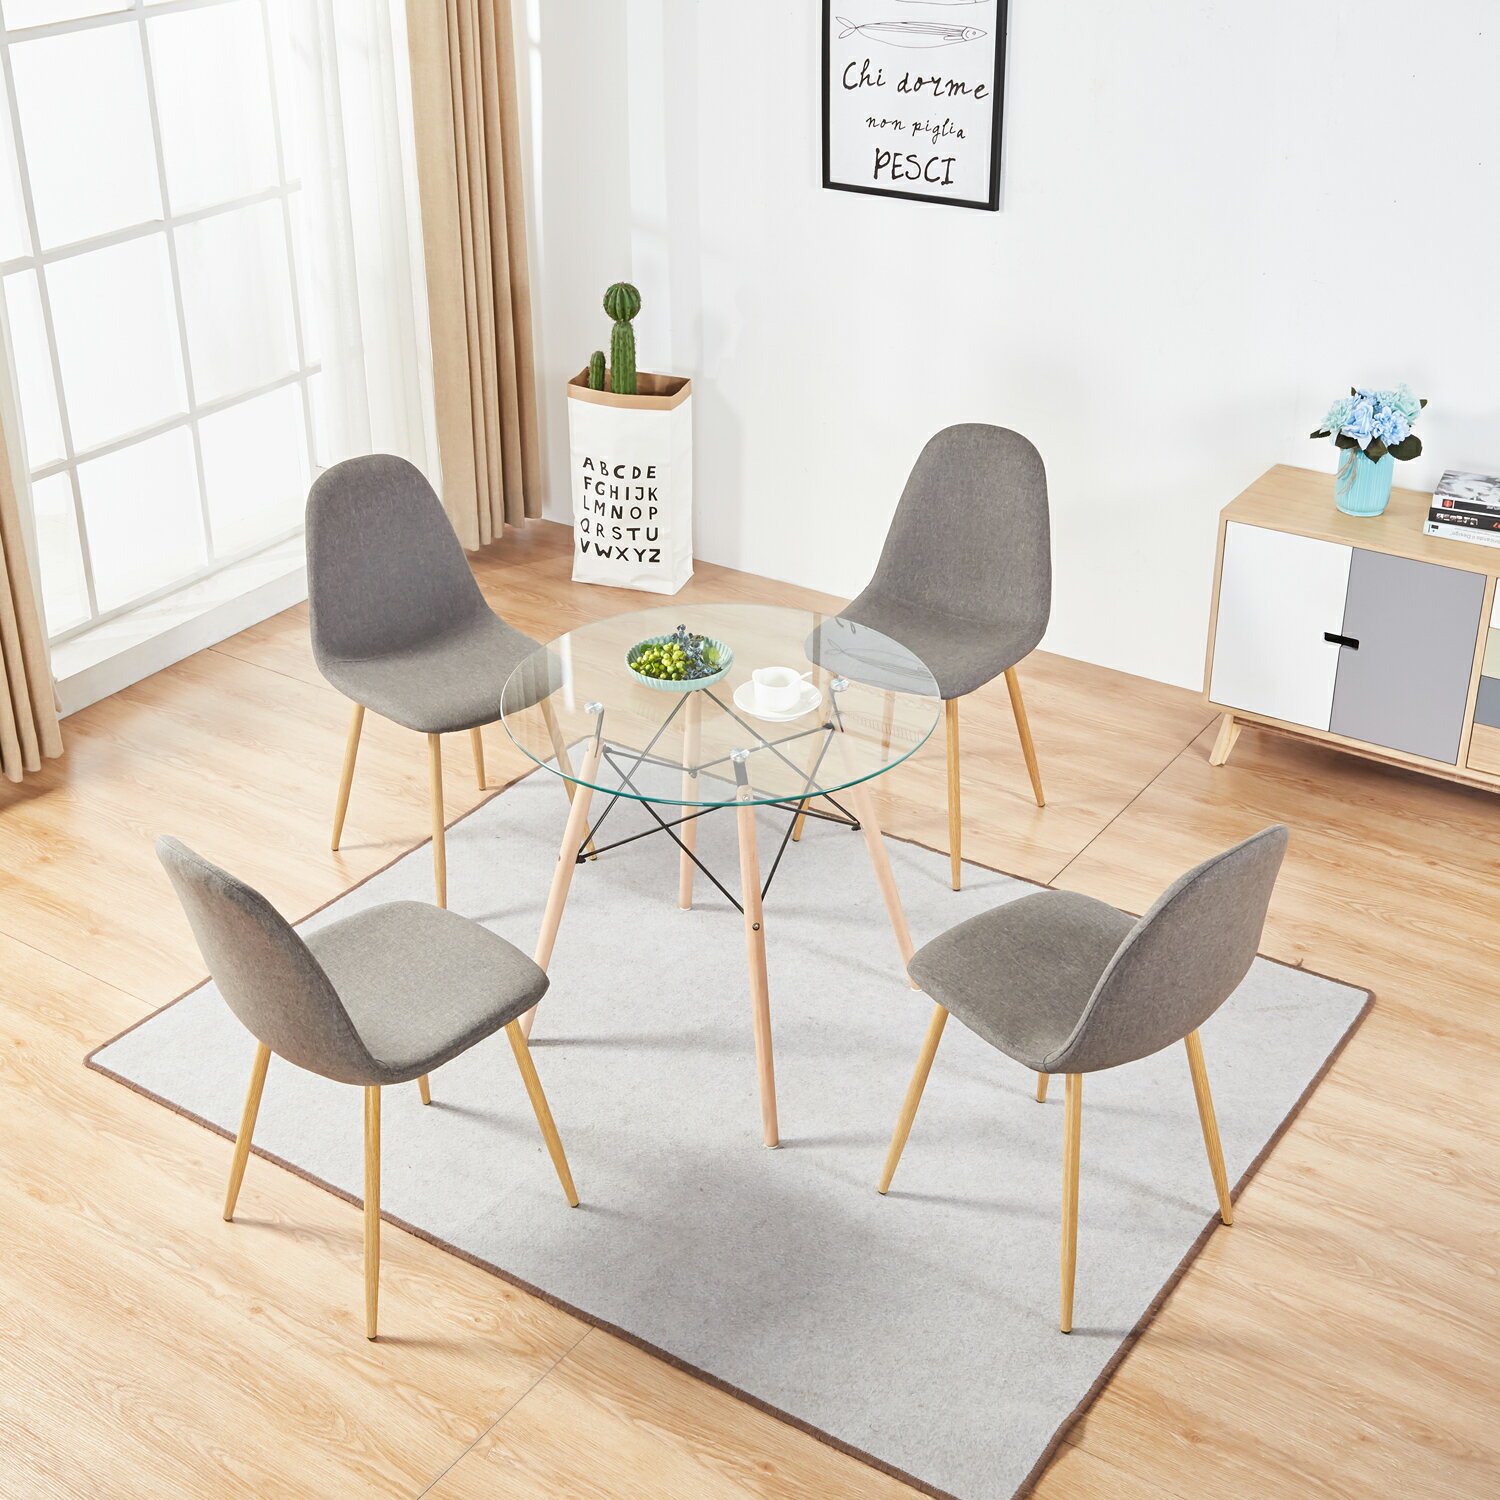 Mcombo Mcombo Dining Side Chairs Set Of 4 Dining Table Round Clear